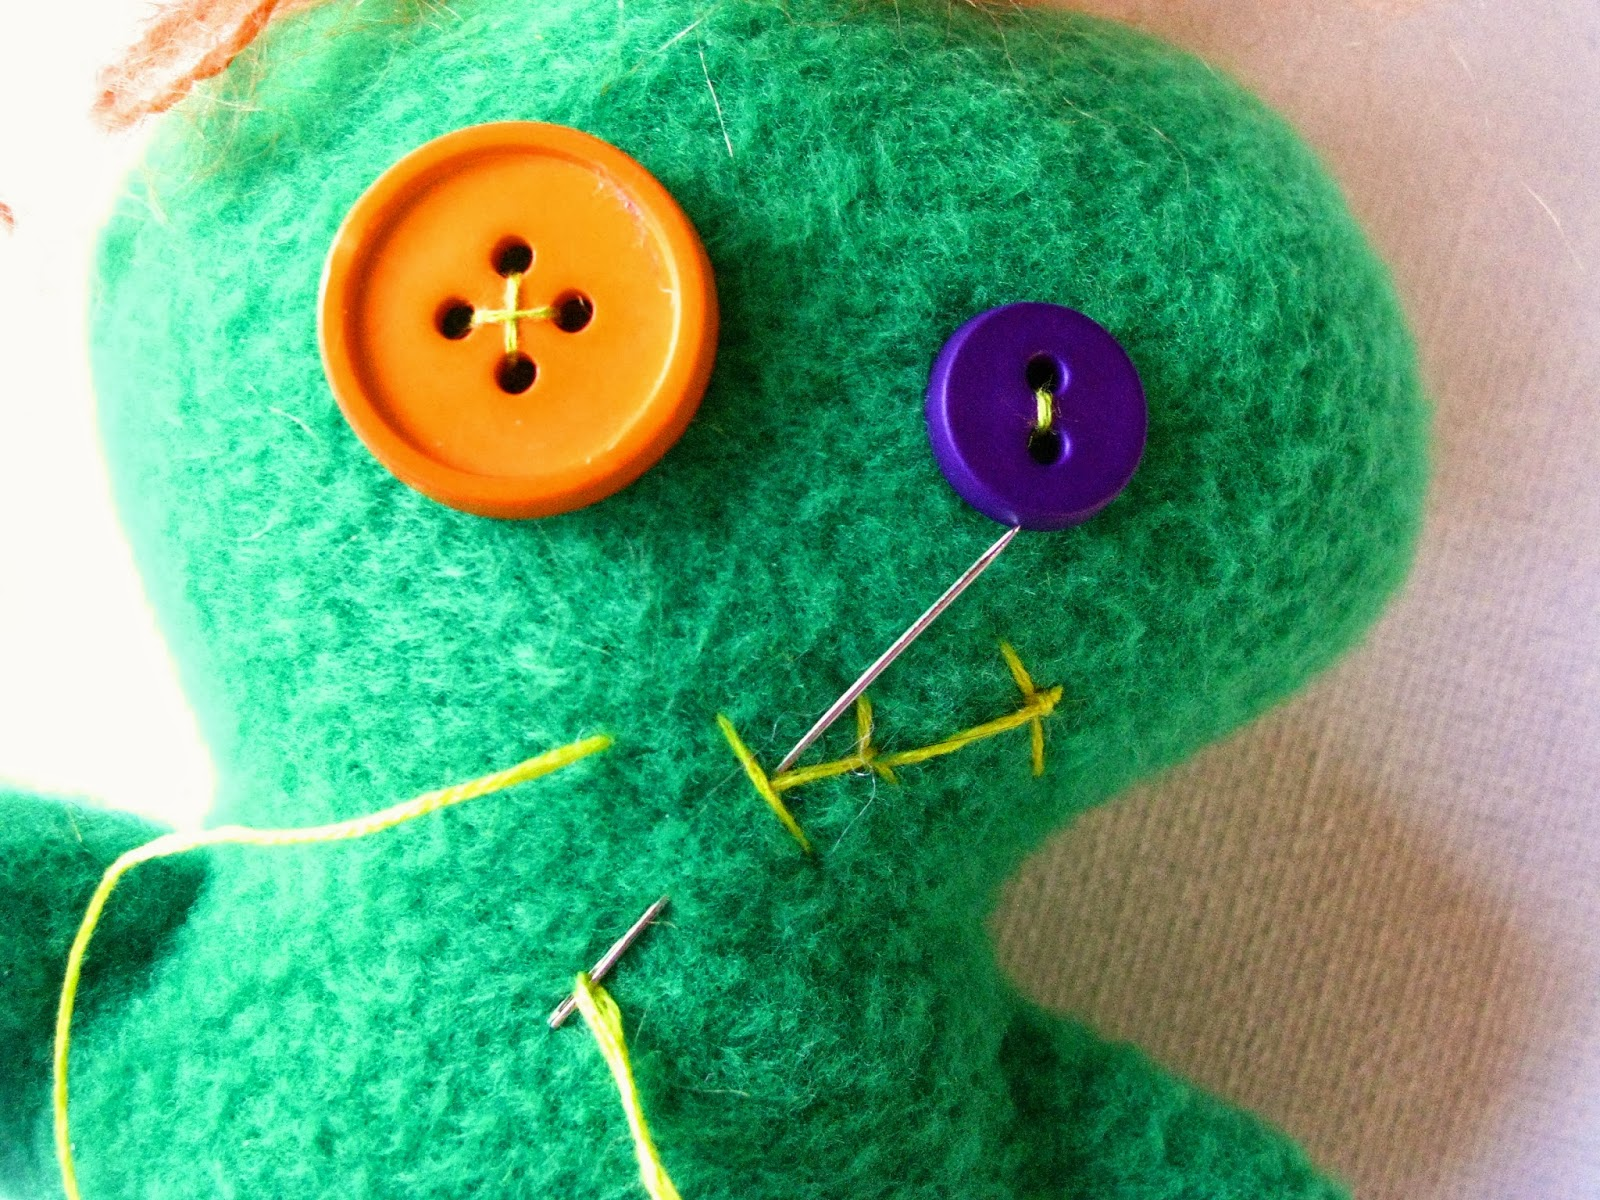 Next Add You Button* Eyes, Use Your Embroidery Floss Here To Add Some Fun  Contrast And Color Don't Try To Make It Perfect, This Guy Is Meant To Look  A